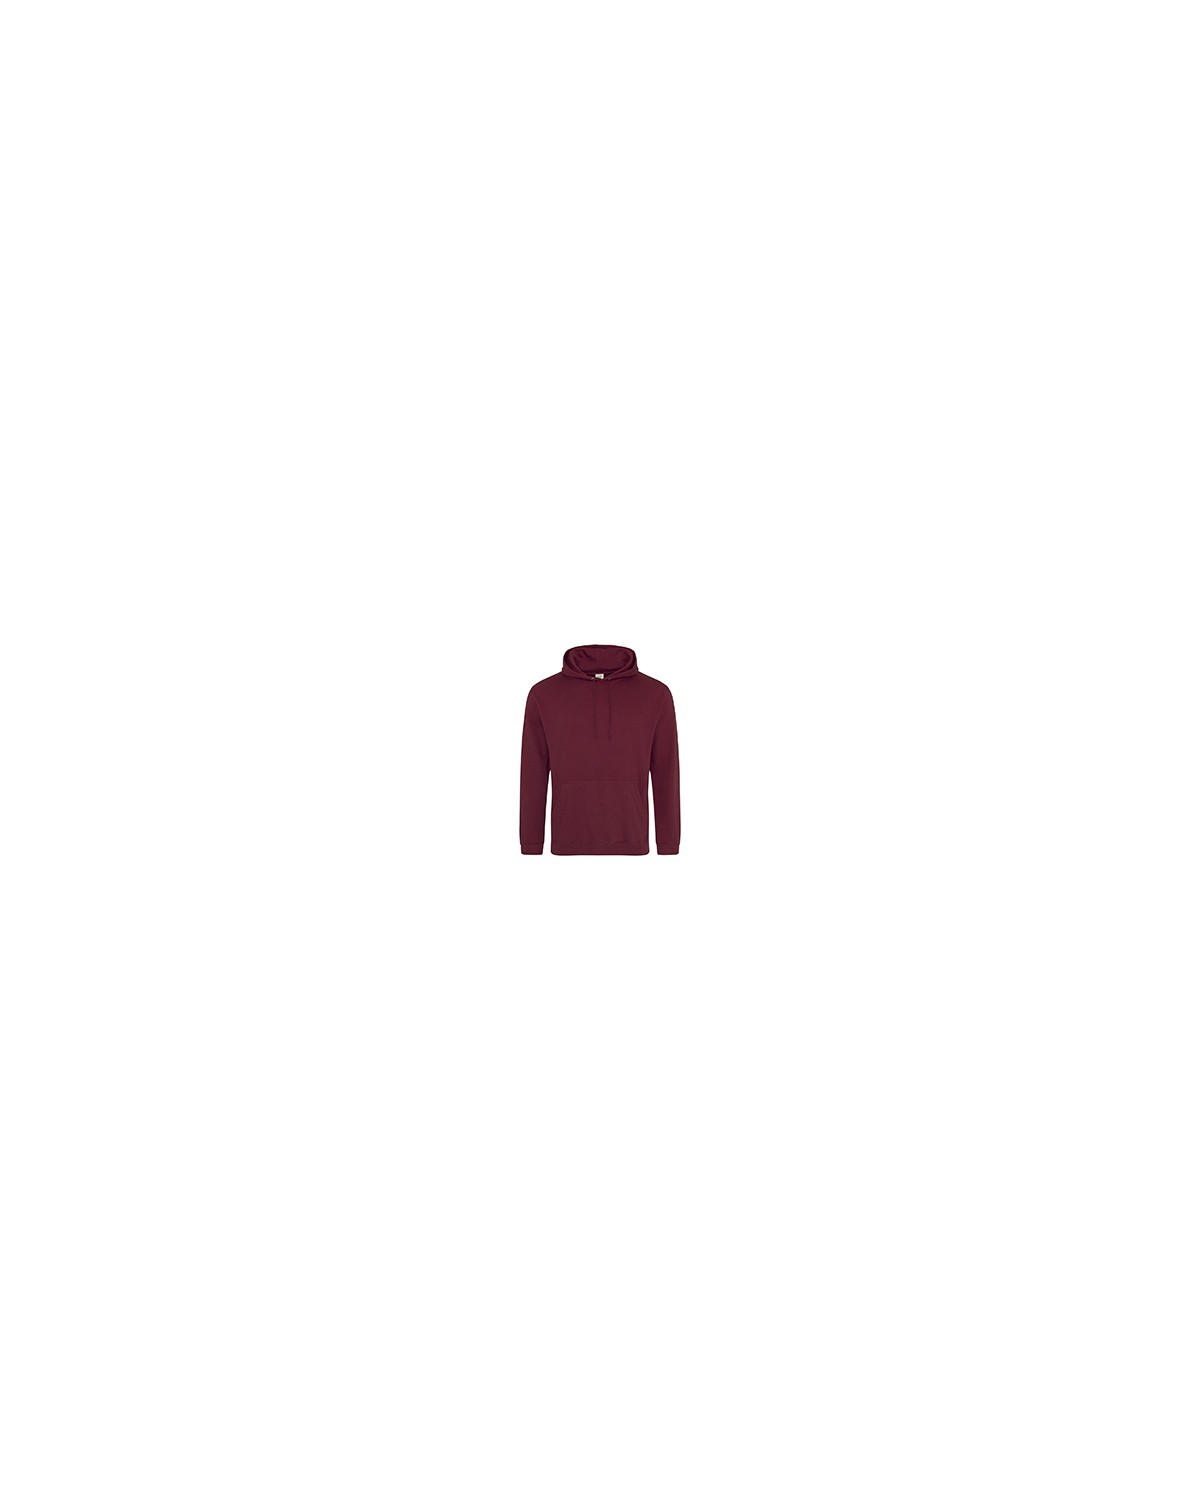 JHA001 Just Hoods By AWDis BURGUNDY